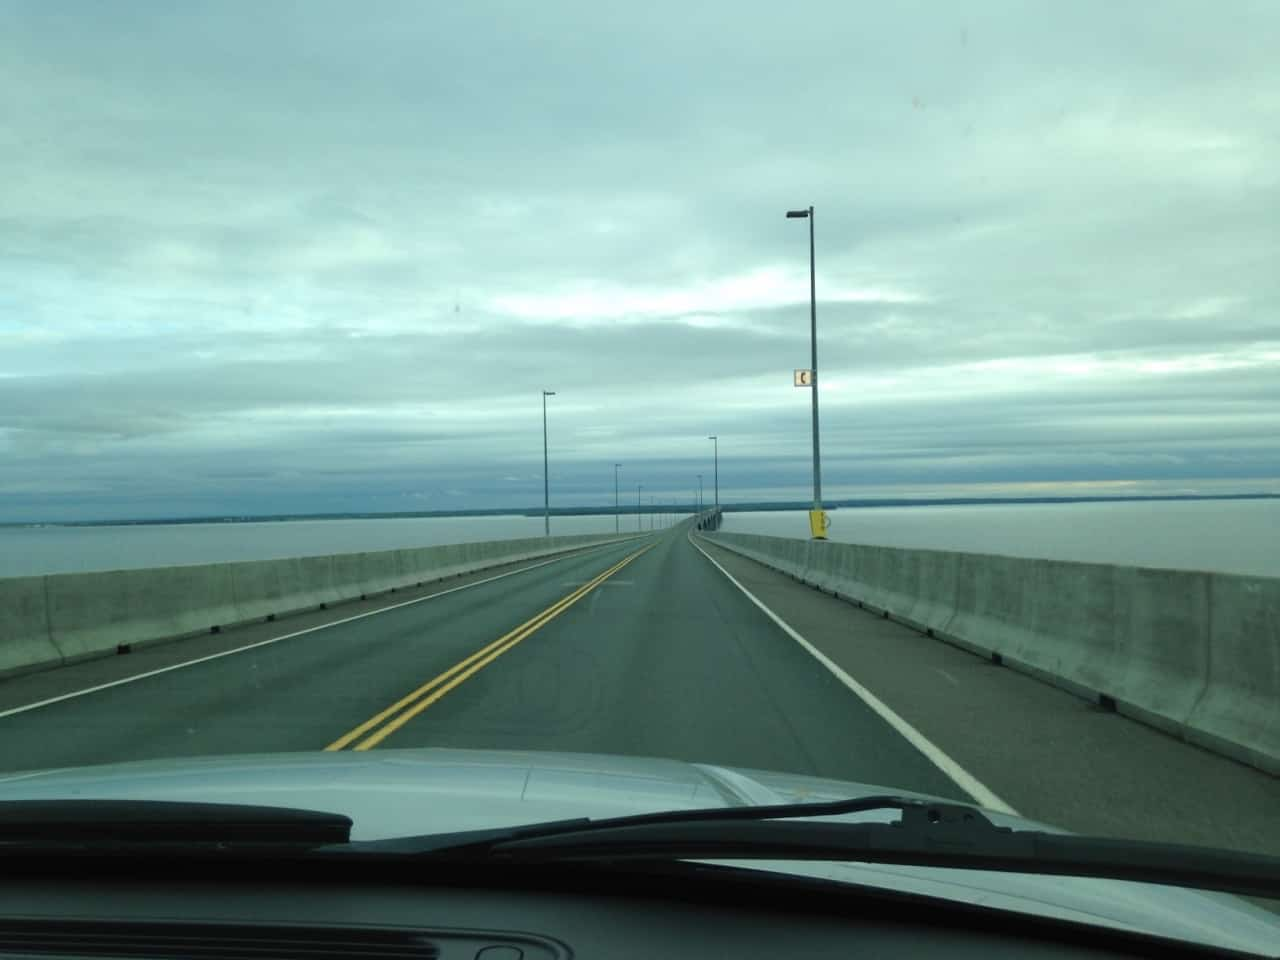 052b86ea6971e4b706bef19b.jpg - Confederation Bridge - Across Canada in search of #BIGselfies trip 2014<br />The worlds longest bridge built across salt water that freezes - strangest description to get yourself a record but you gotta do what you gotta do, worthy of a # BIGselfie I thought